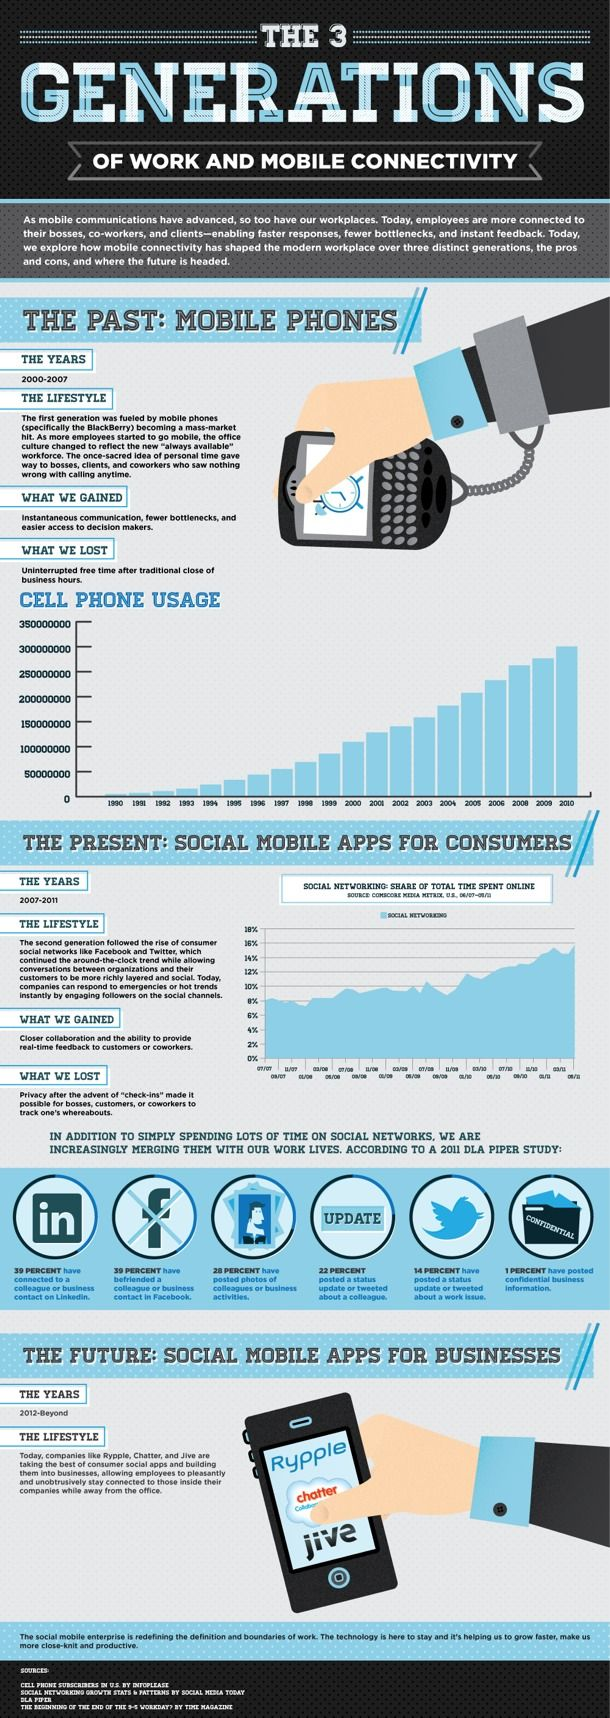 The Future of Social Mobile Communications in the Enterprise: Internet Marketing, Infografia Infographic, Changing Work, Mobiles App, Social Media, Social Mobiles, Mobiles Communication, Social Computers, Mobiles Connection